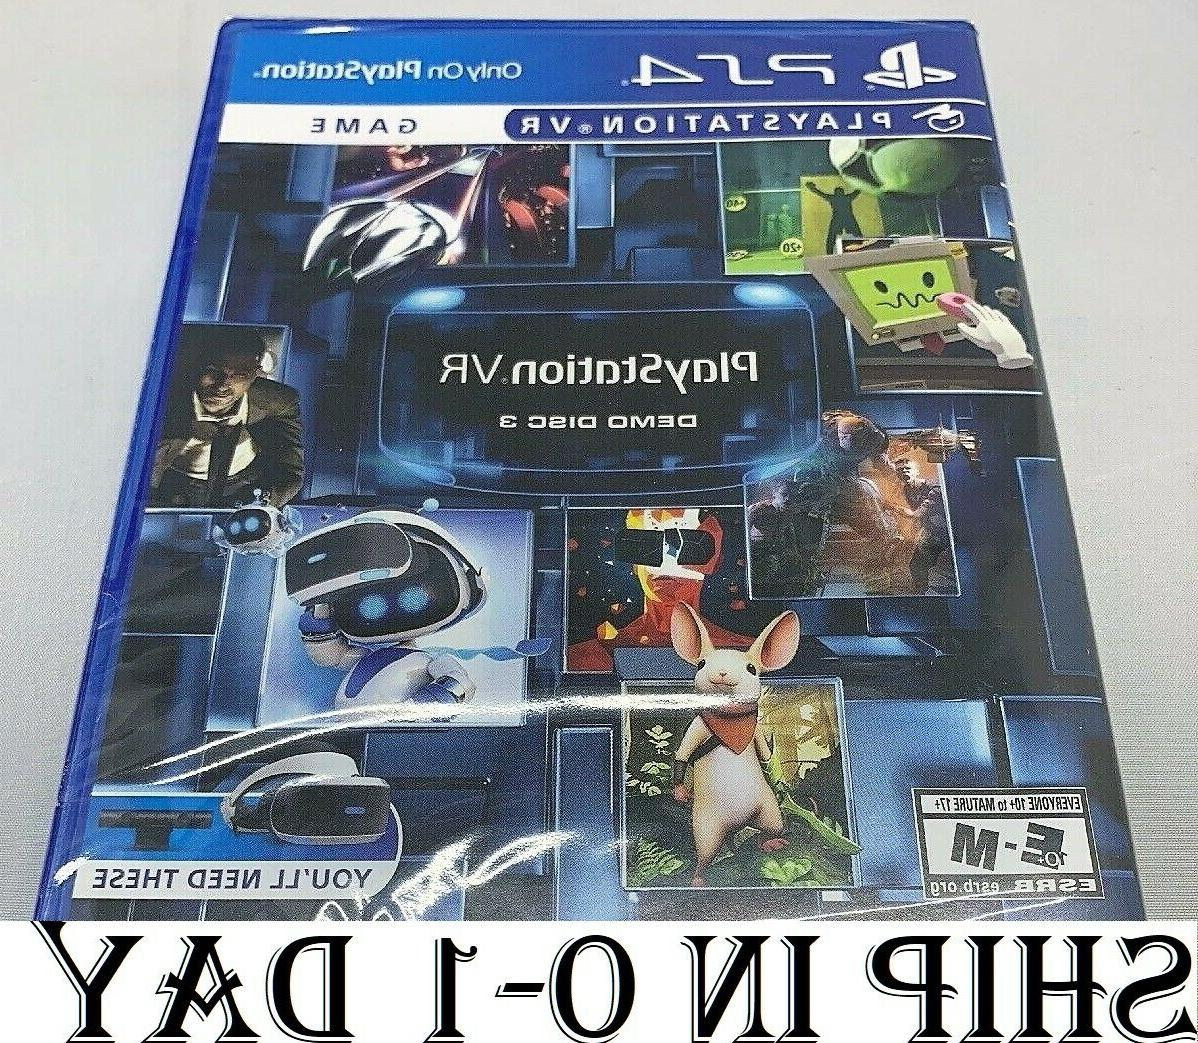 brand new playstation vr demo disc 3